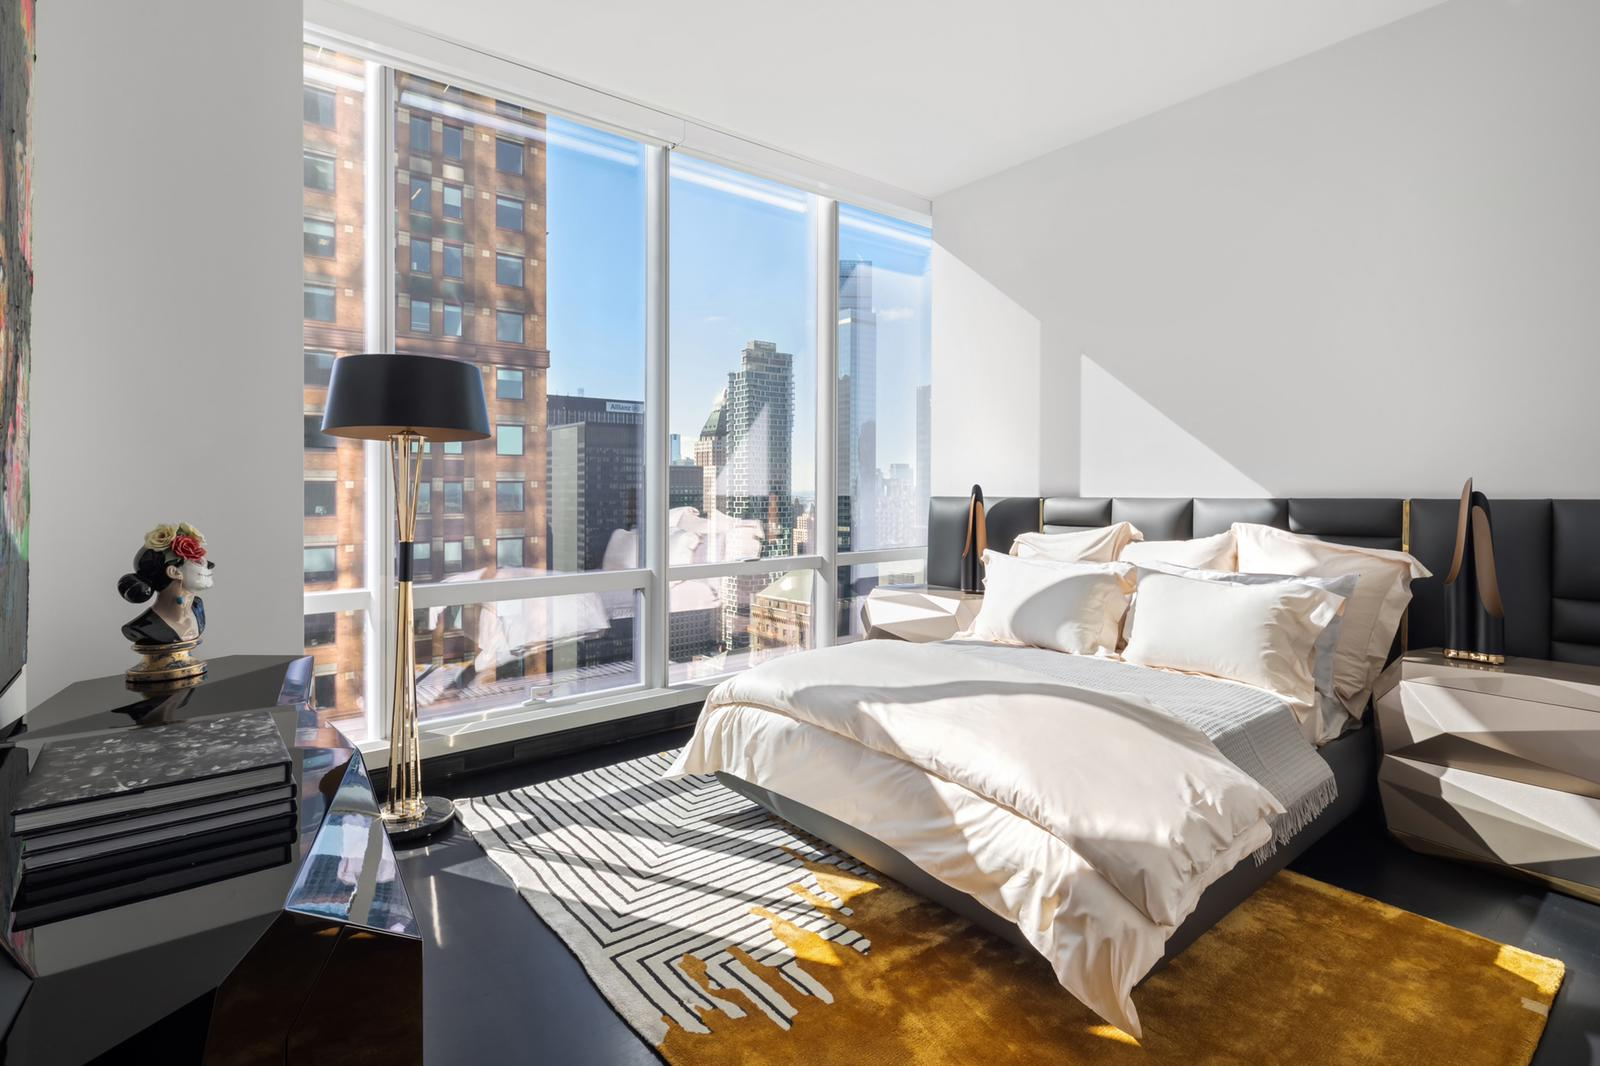 BRIGHT DELUXE BEDROOM IN COVET NYC by delightfull